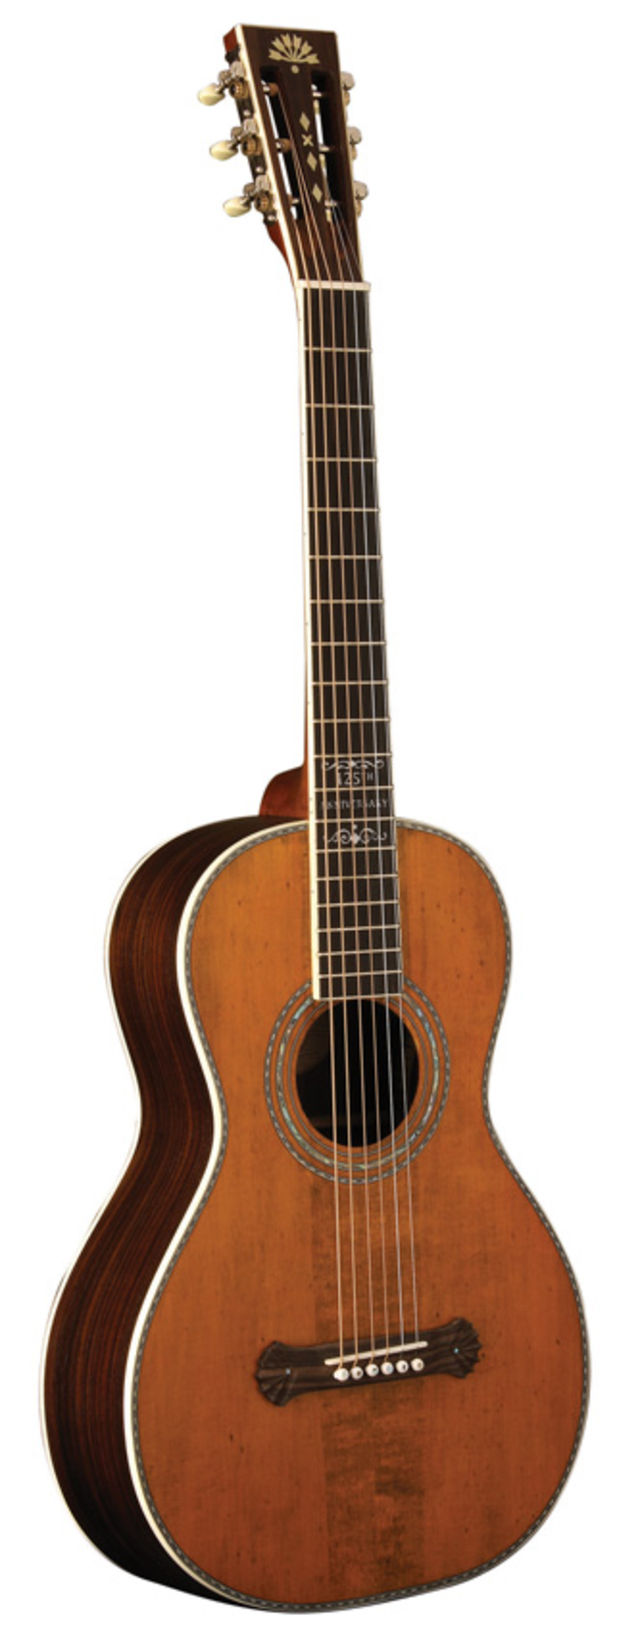 The Washburn R316SWRK parlour acoustic